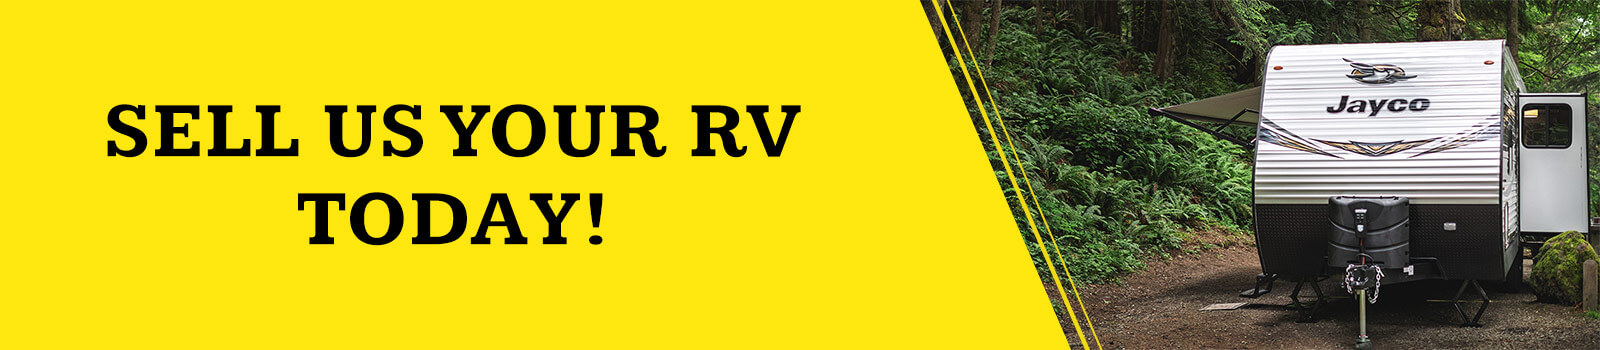 Sell Your RV